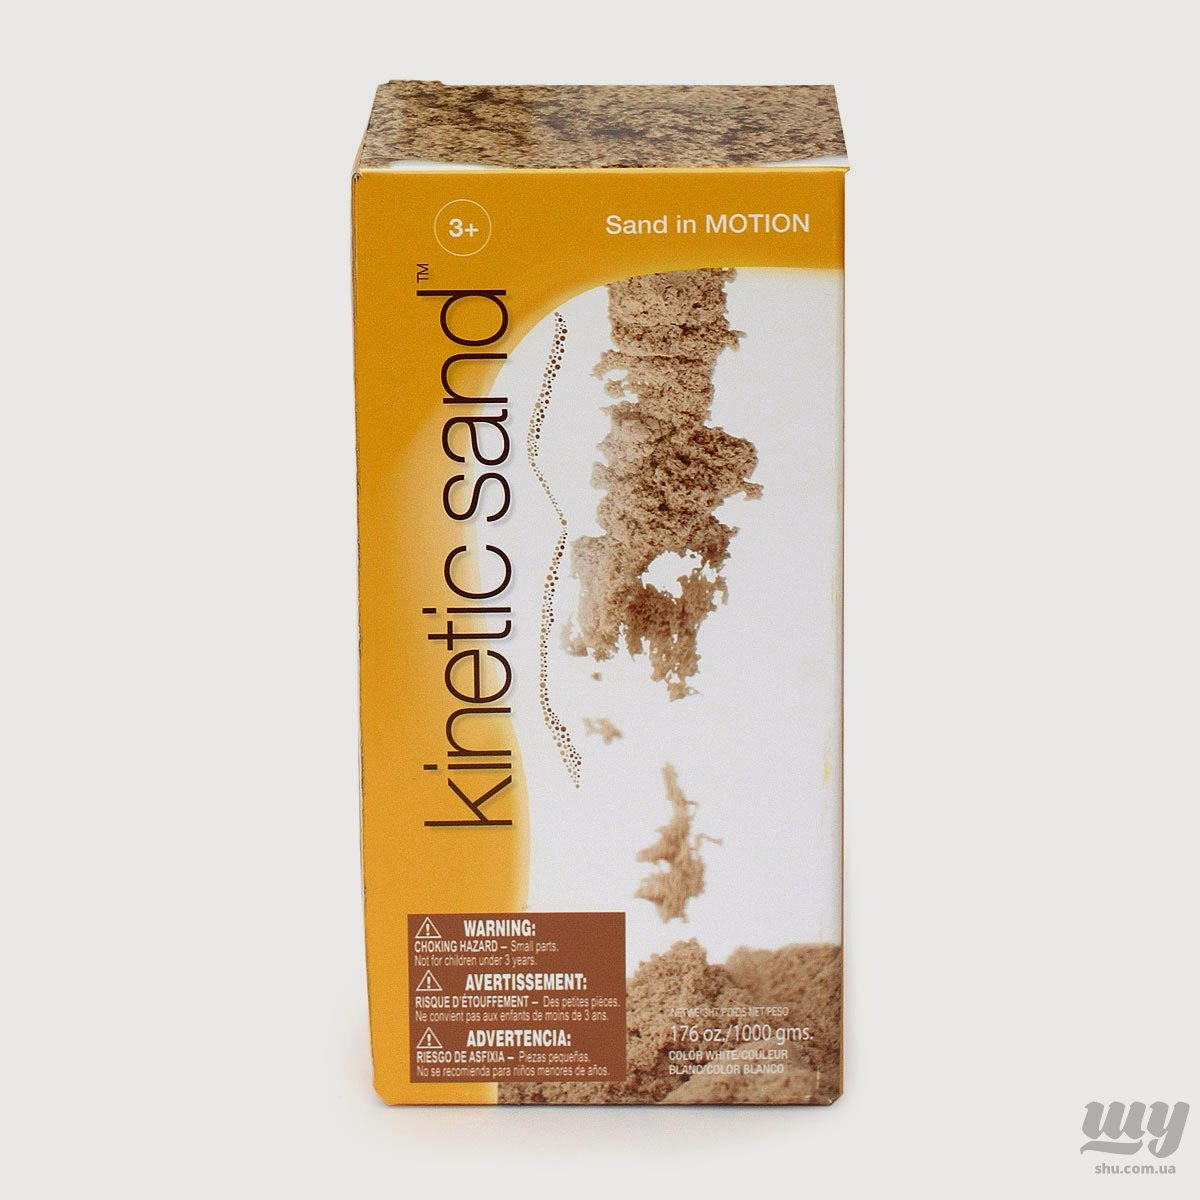 kinetic sand packaging.jpg